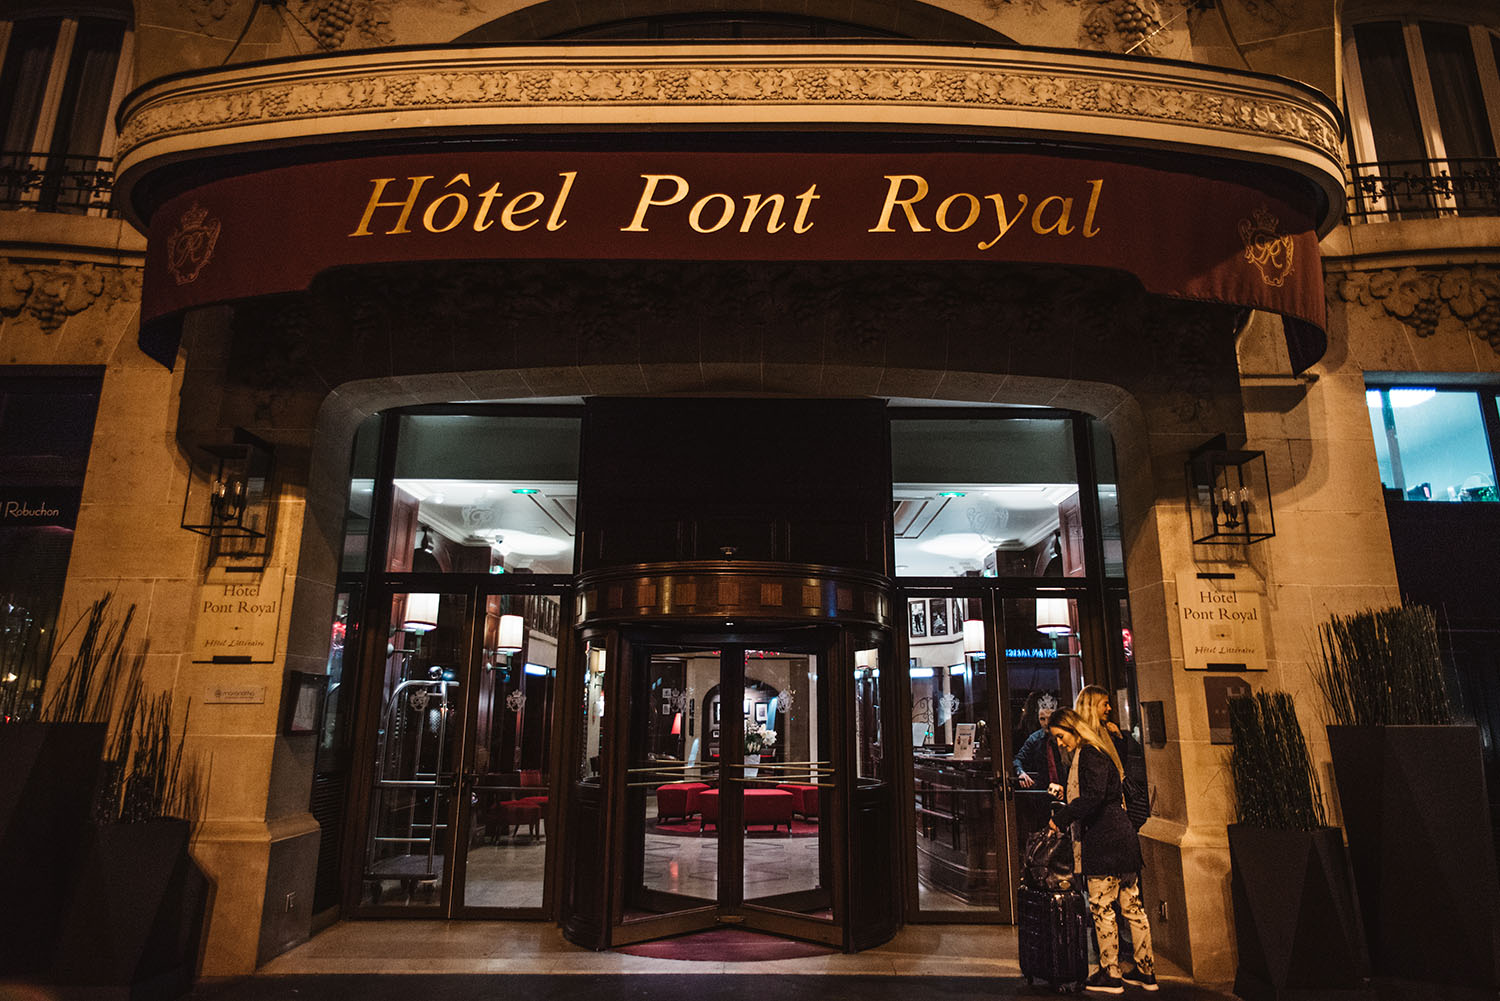 Hotel Pont Royal - 5 star hotel in Paris